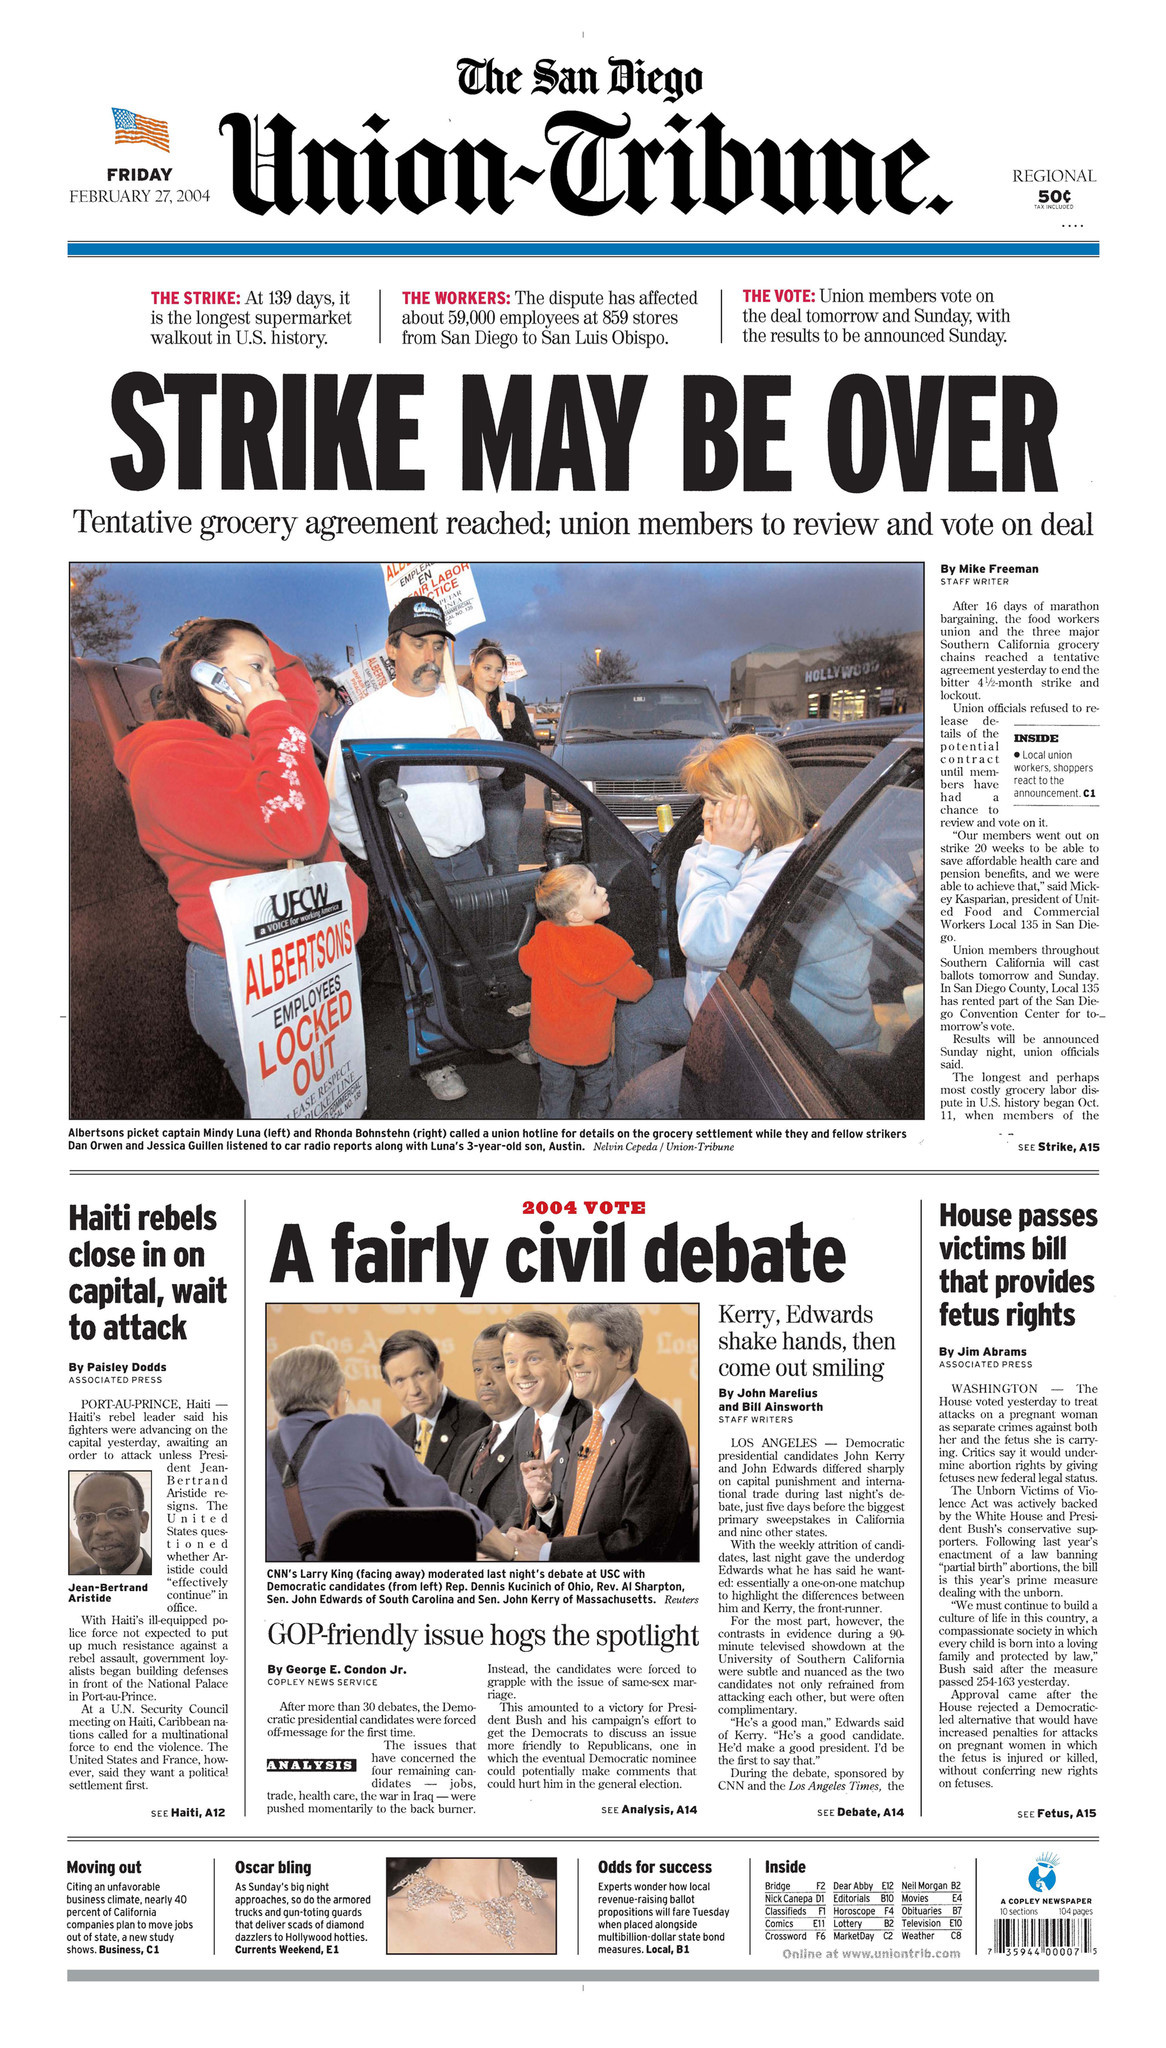 February 27, 2004: Grocery strike ends - The San Diego Union